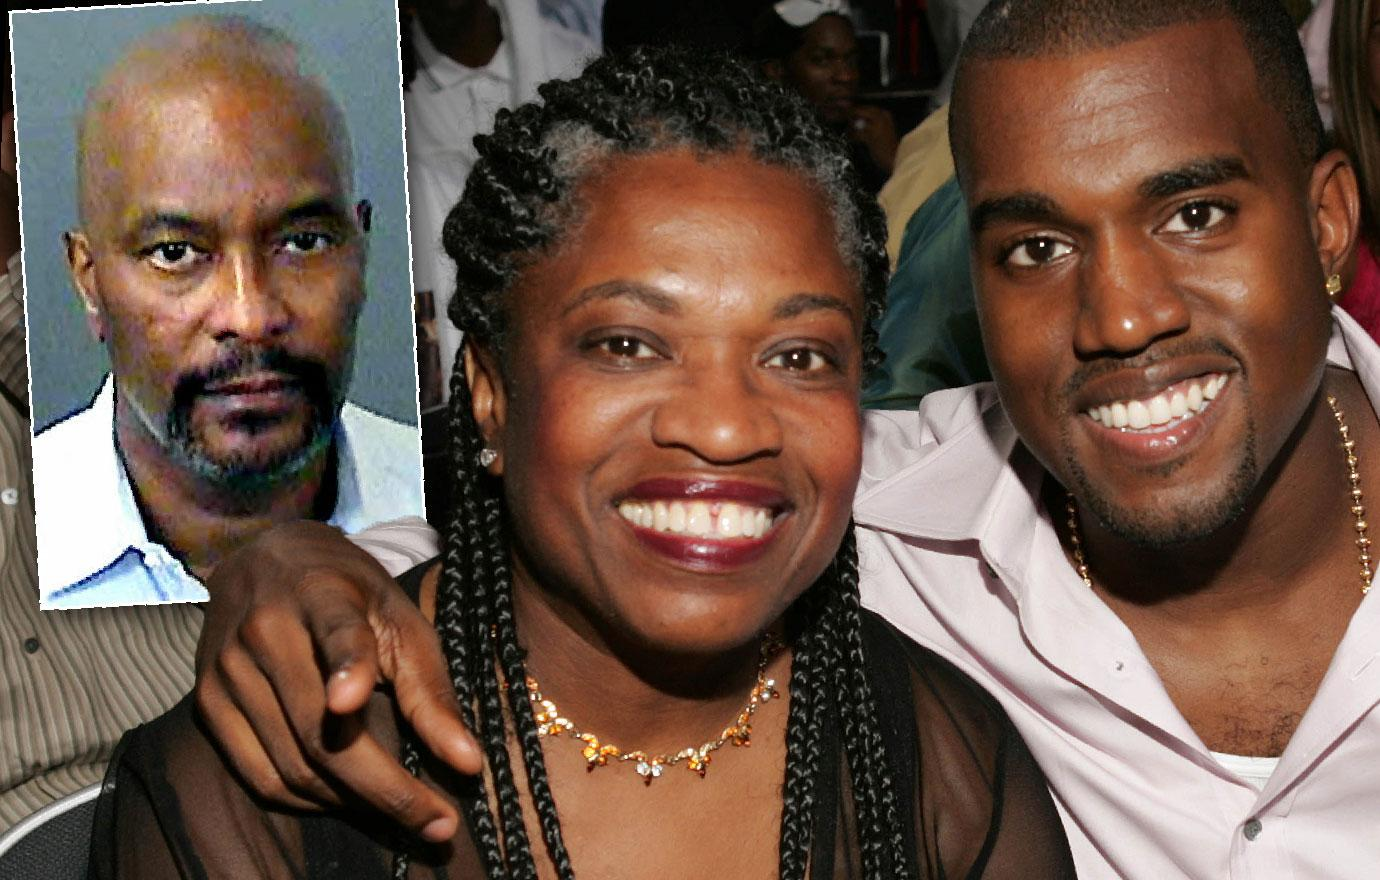 Kanye West Tweets About Plastic Surgeon Who Treated His Late Mom Forgiveness